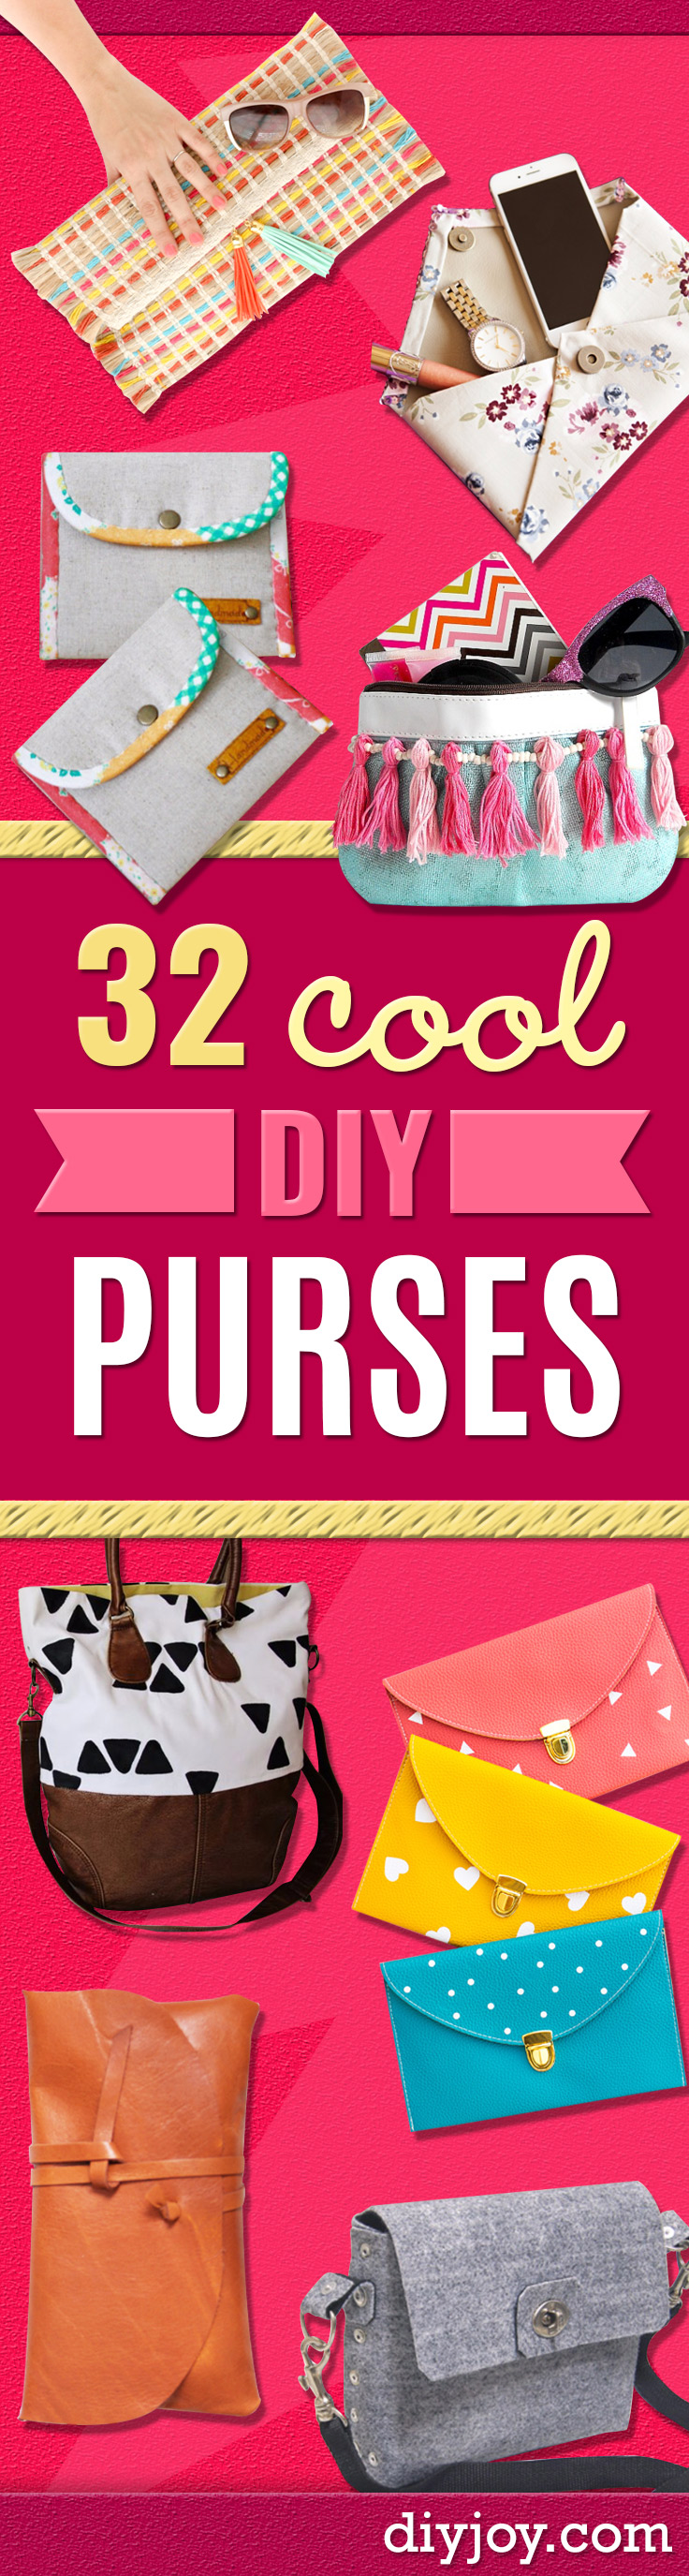 DIY Purses and Handbags - Homemade Projects to Decorate and Make Purses - Add Paint, Glitter, Buttons and Bling To Your Hand Bags and Purse With These Easy Step by Step Tutorials - Boho, Modern, and Cool Fashion Ideas for Women and Teens